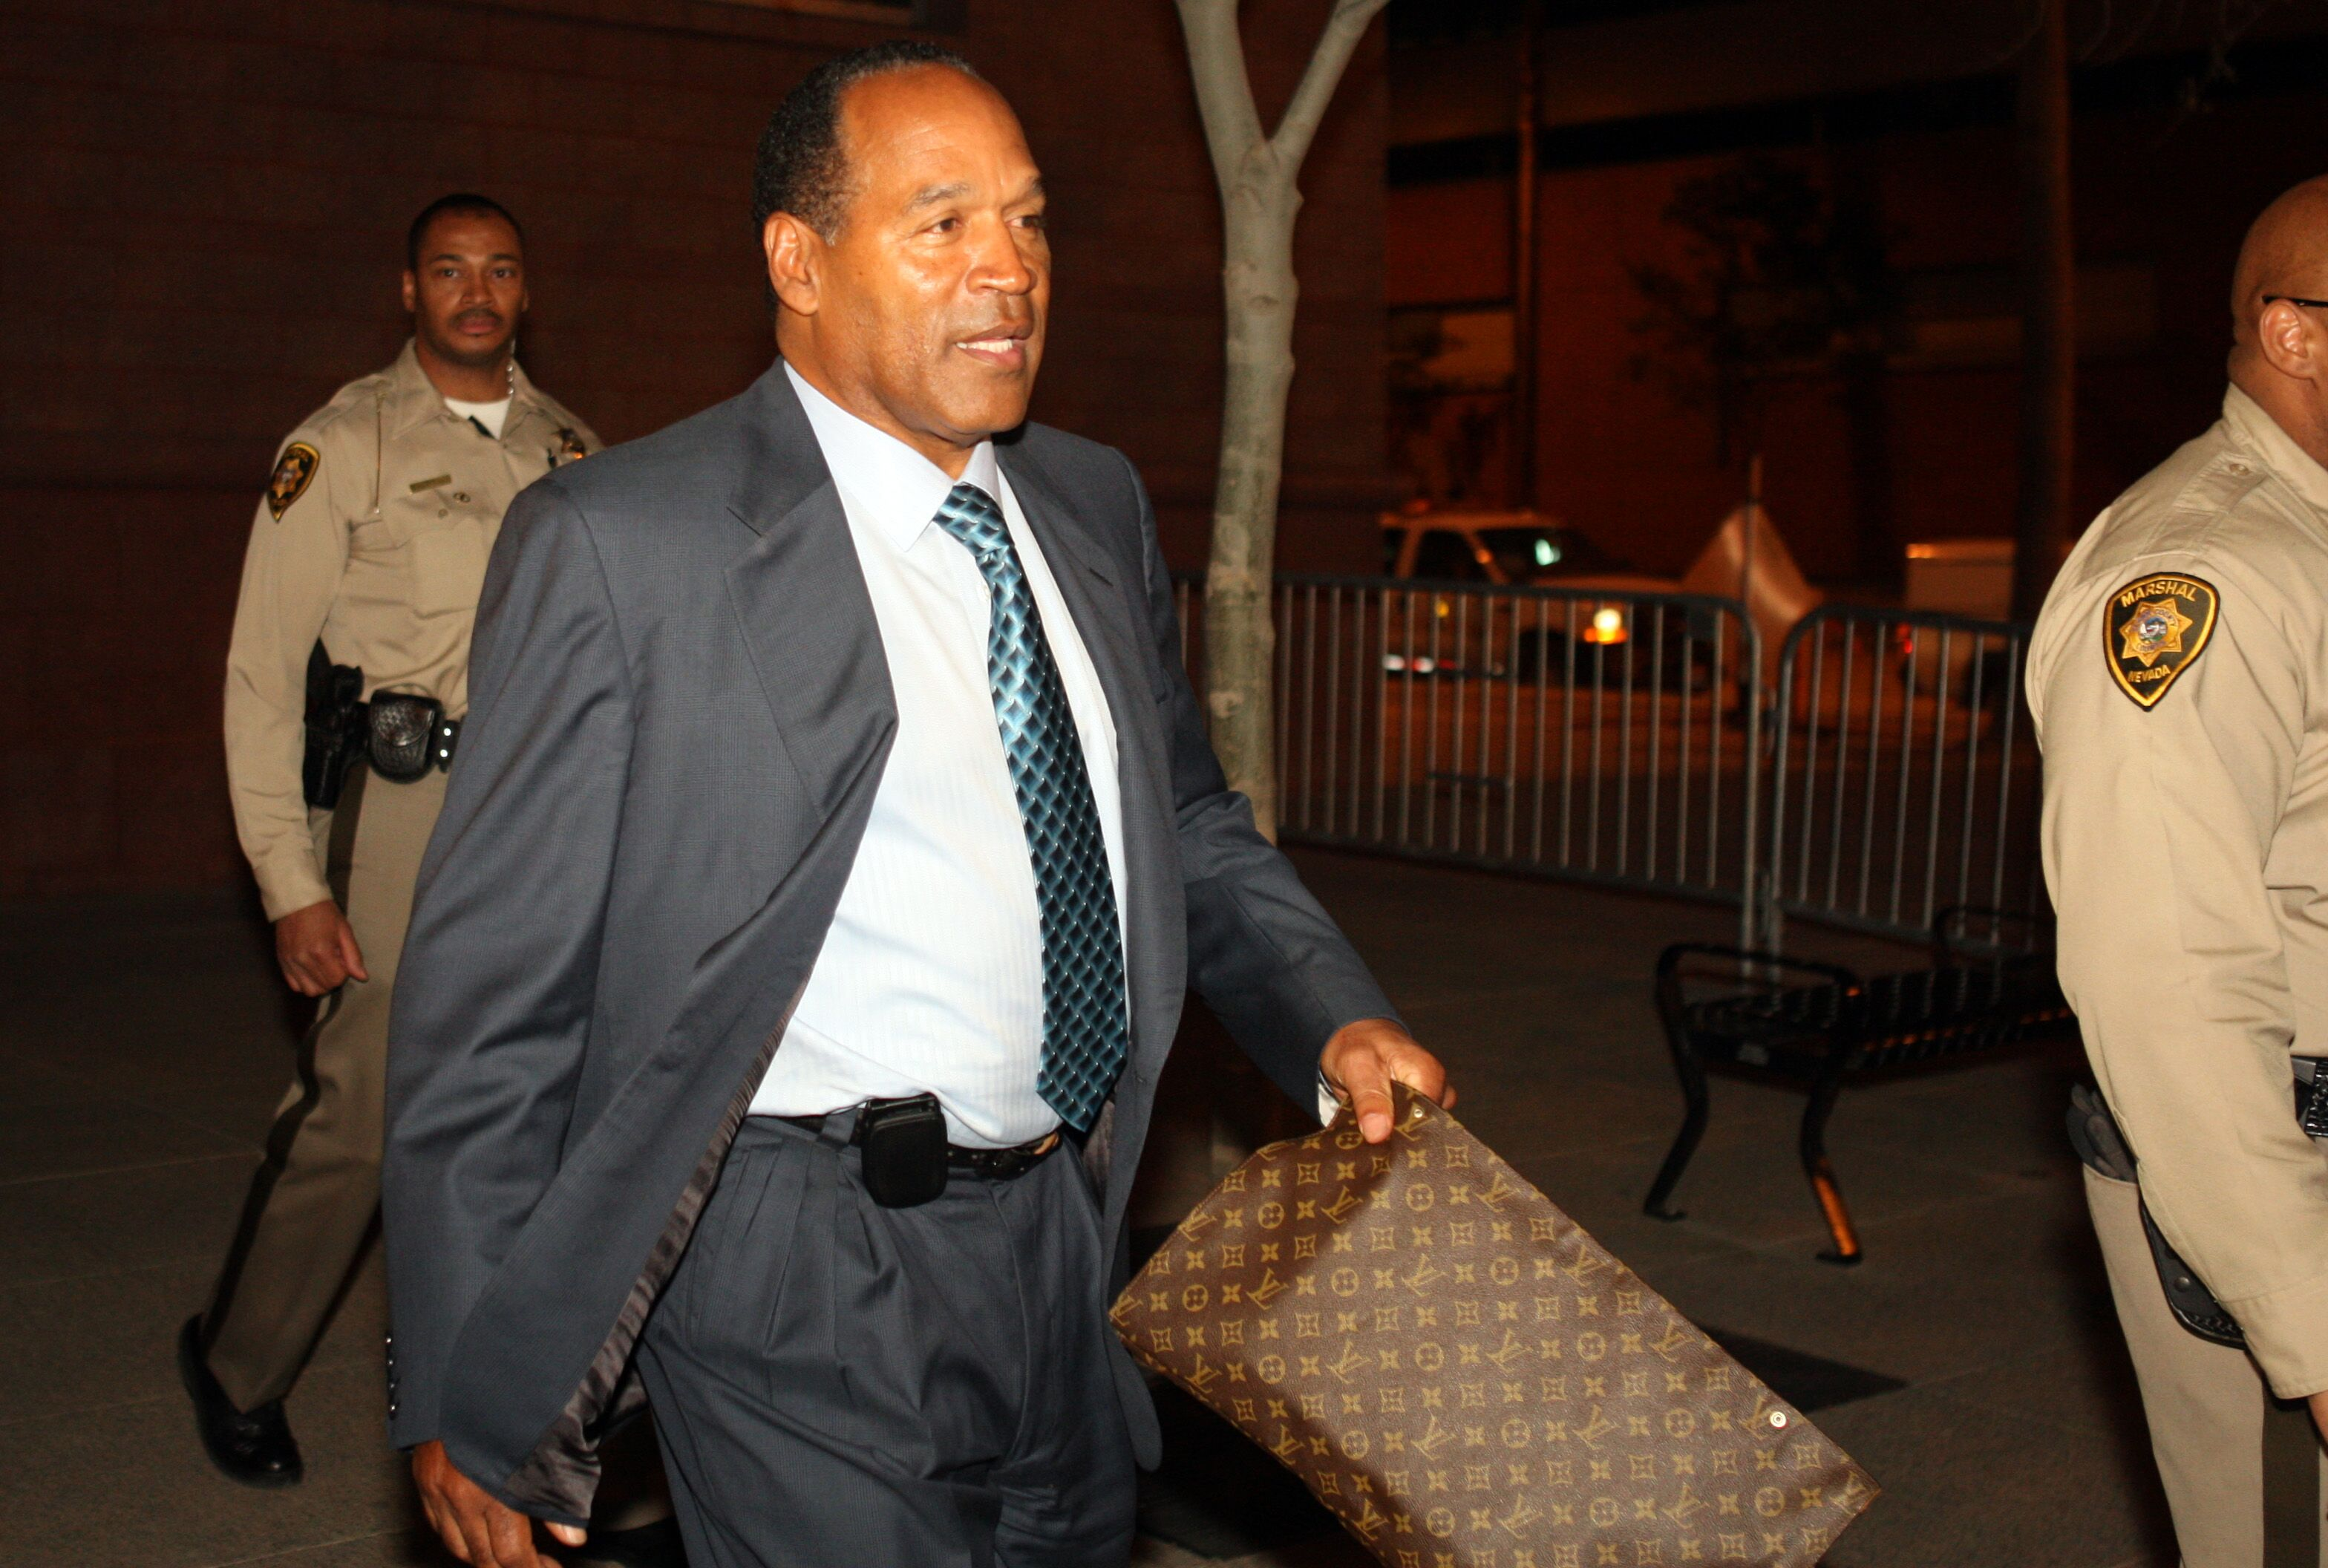 O.J. Simpson at the Clark County Regional Justice Center in 2008 | Source: Getty Images